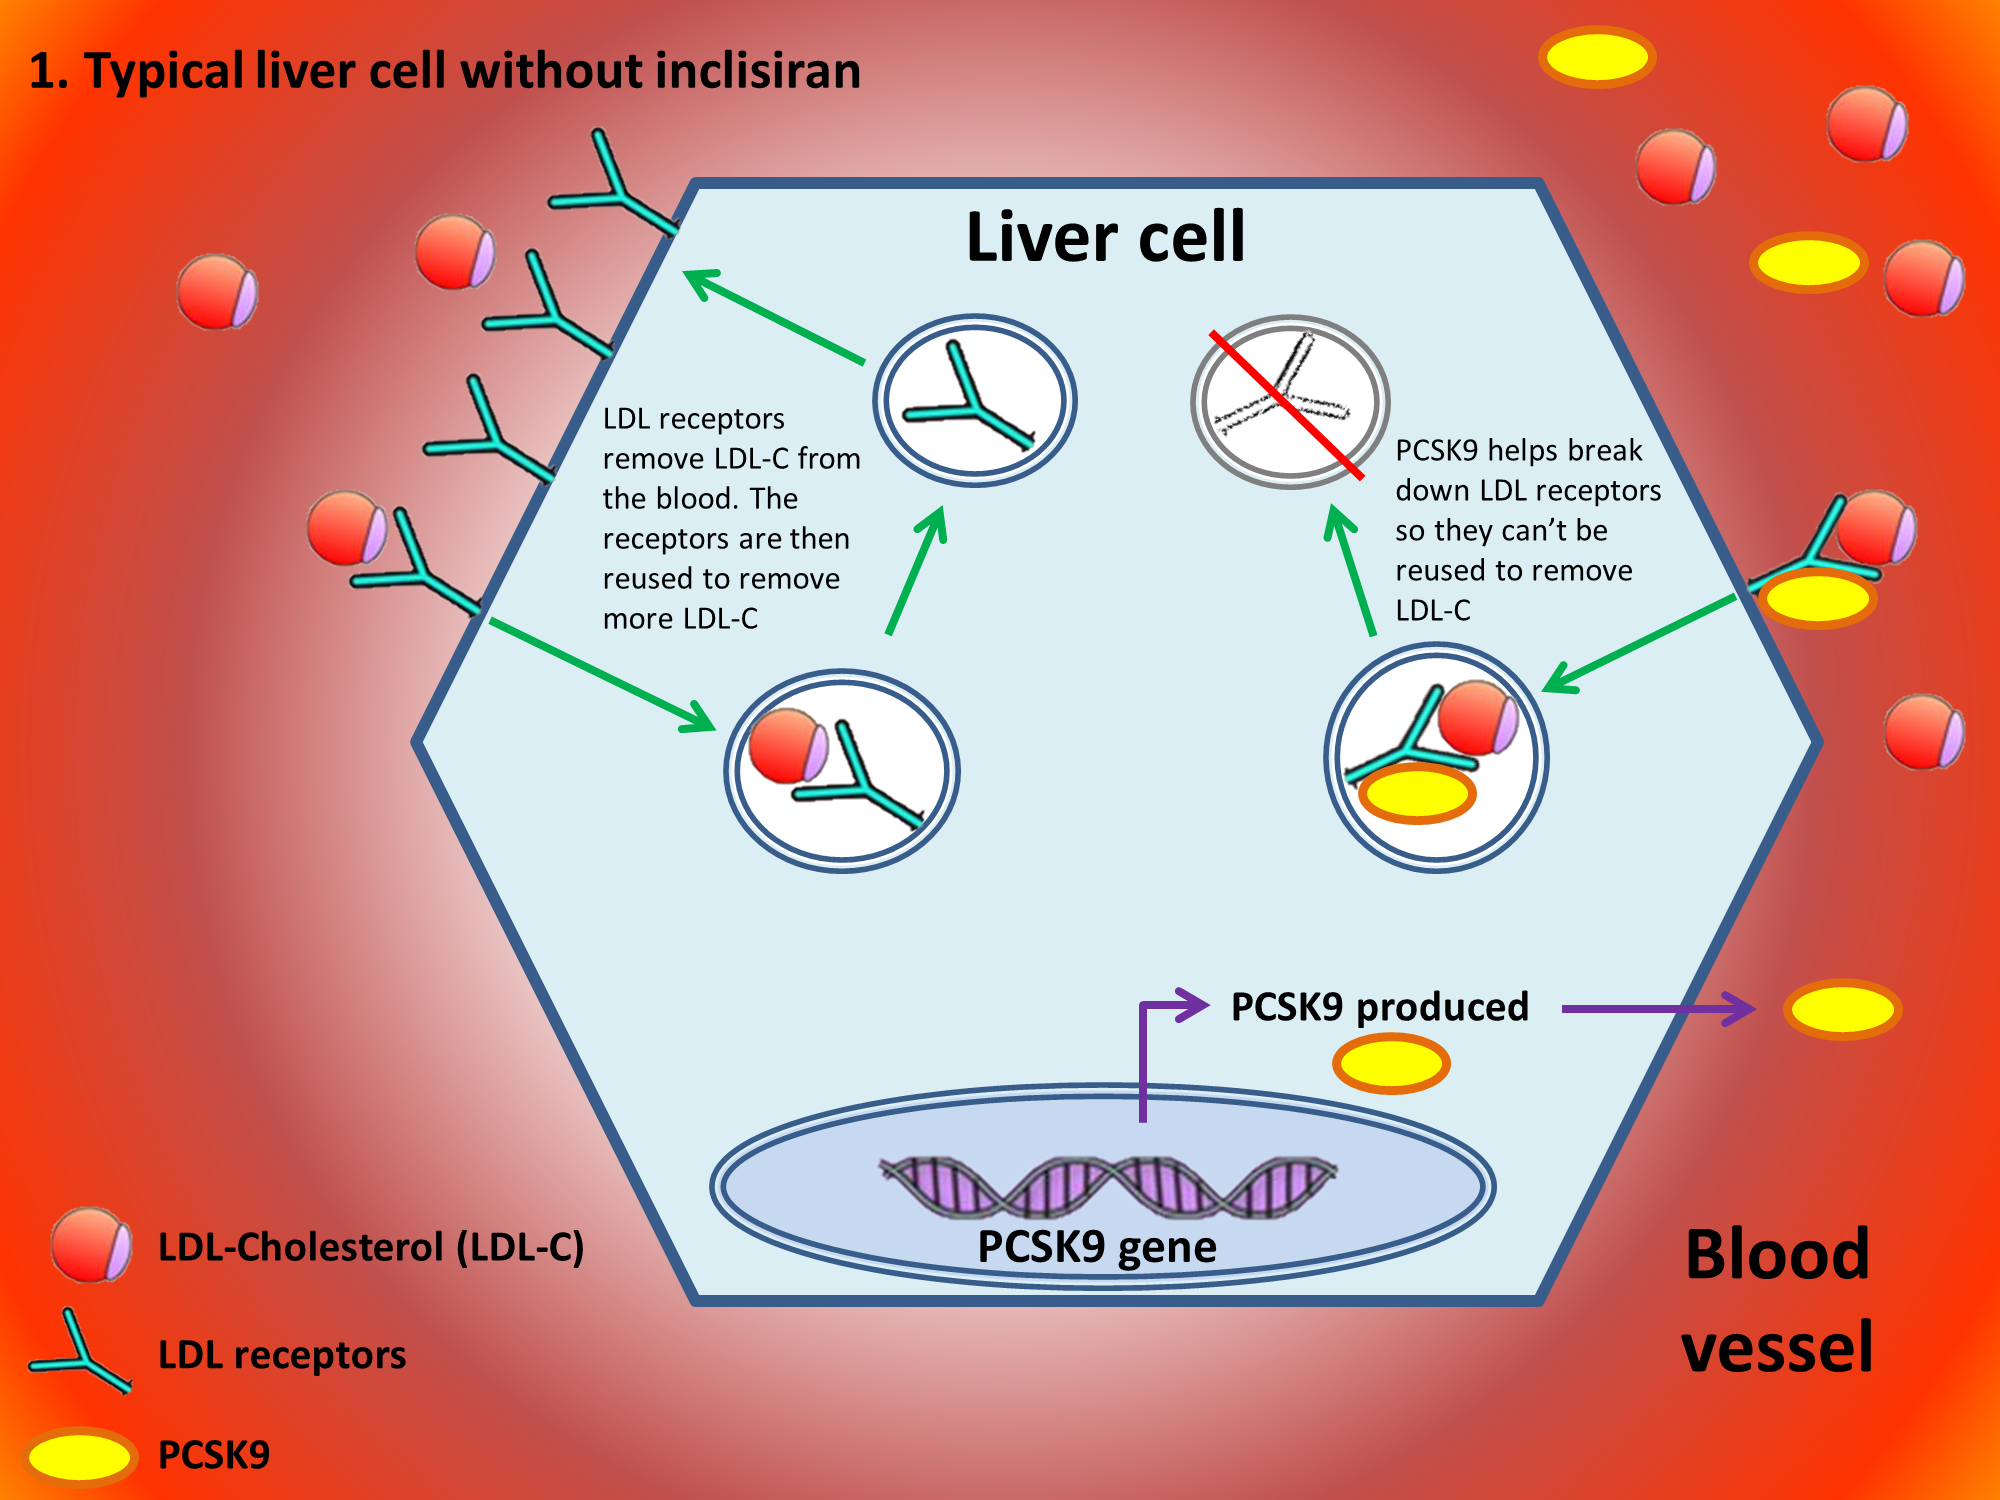 PCSK9 and Inclisiran action diagram 1of2.JPG